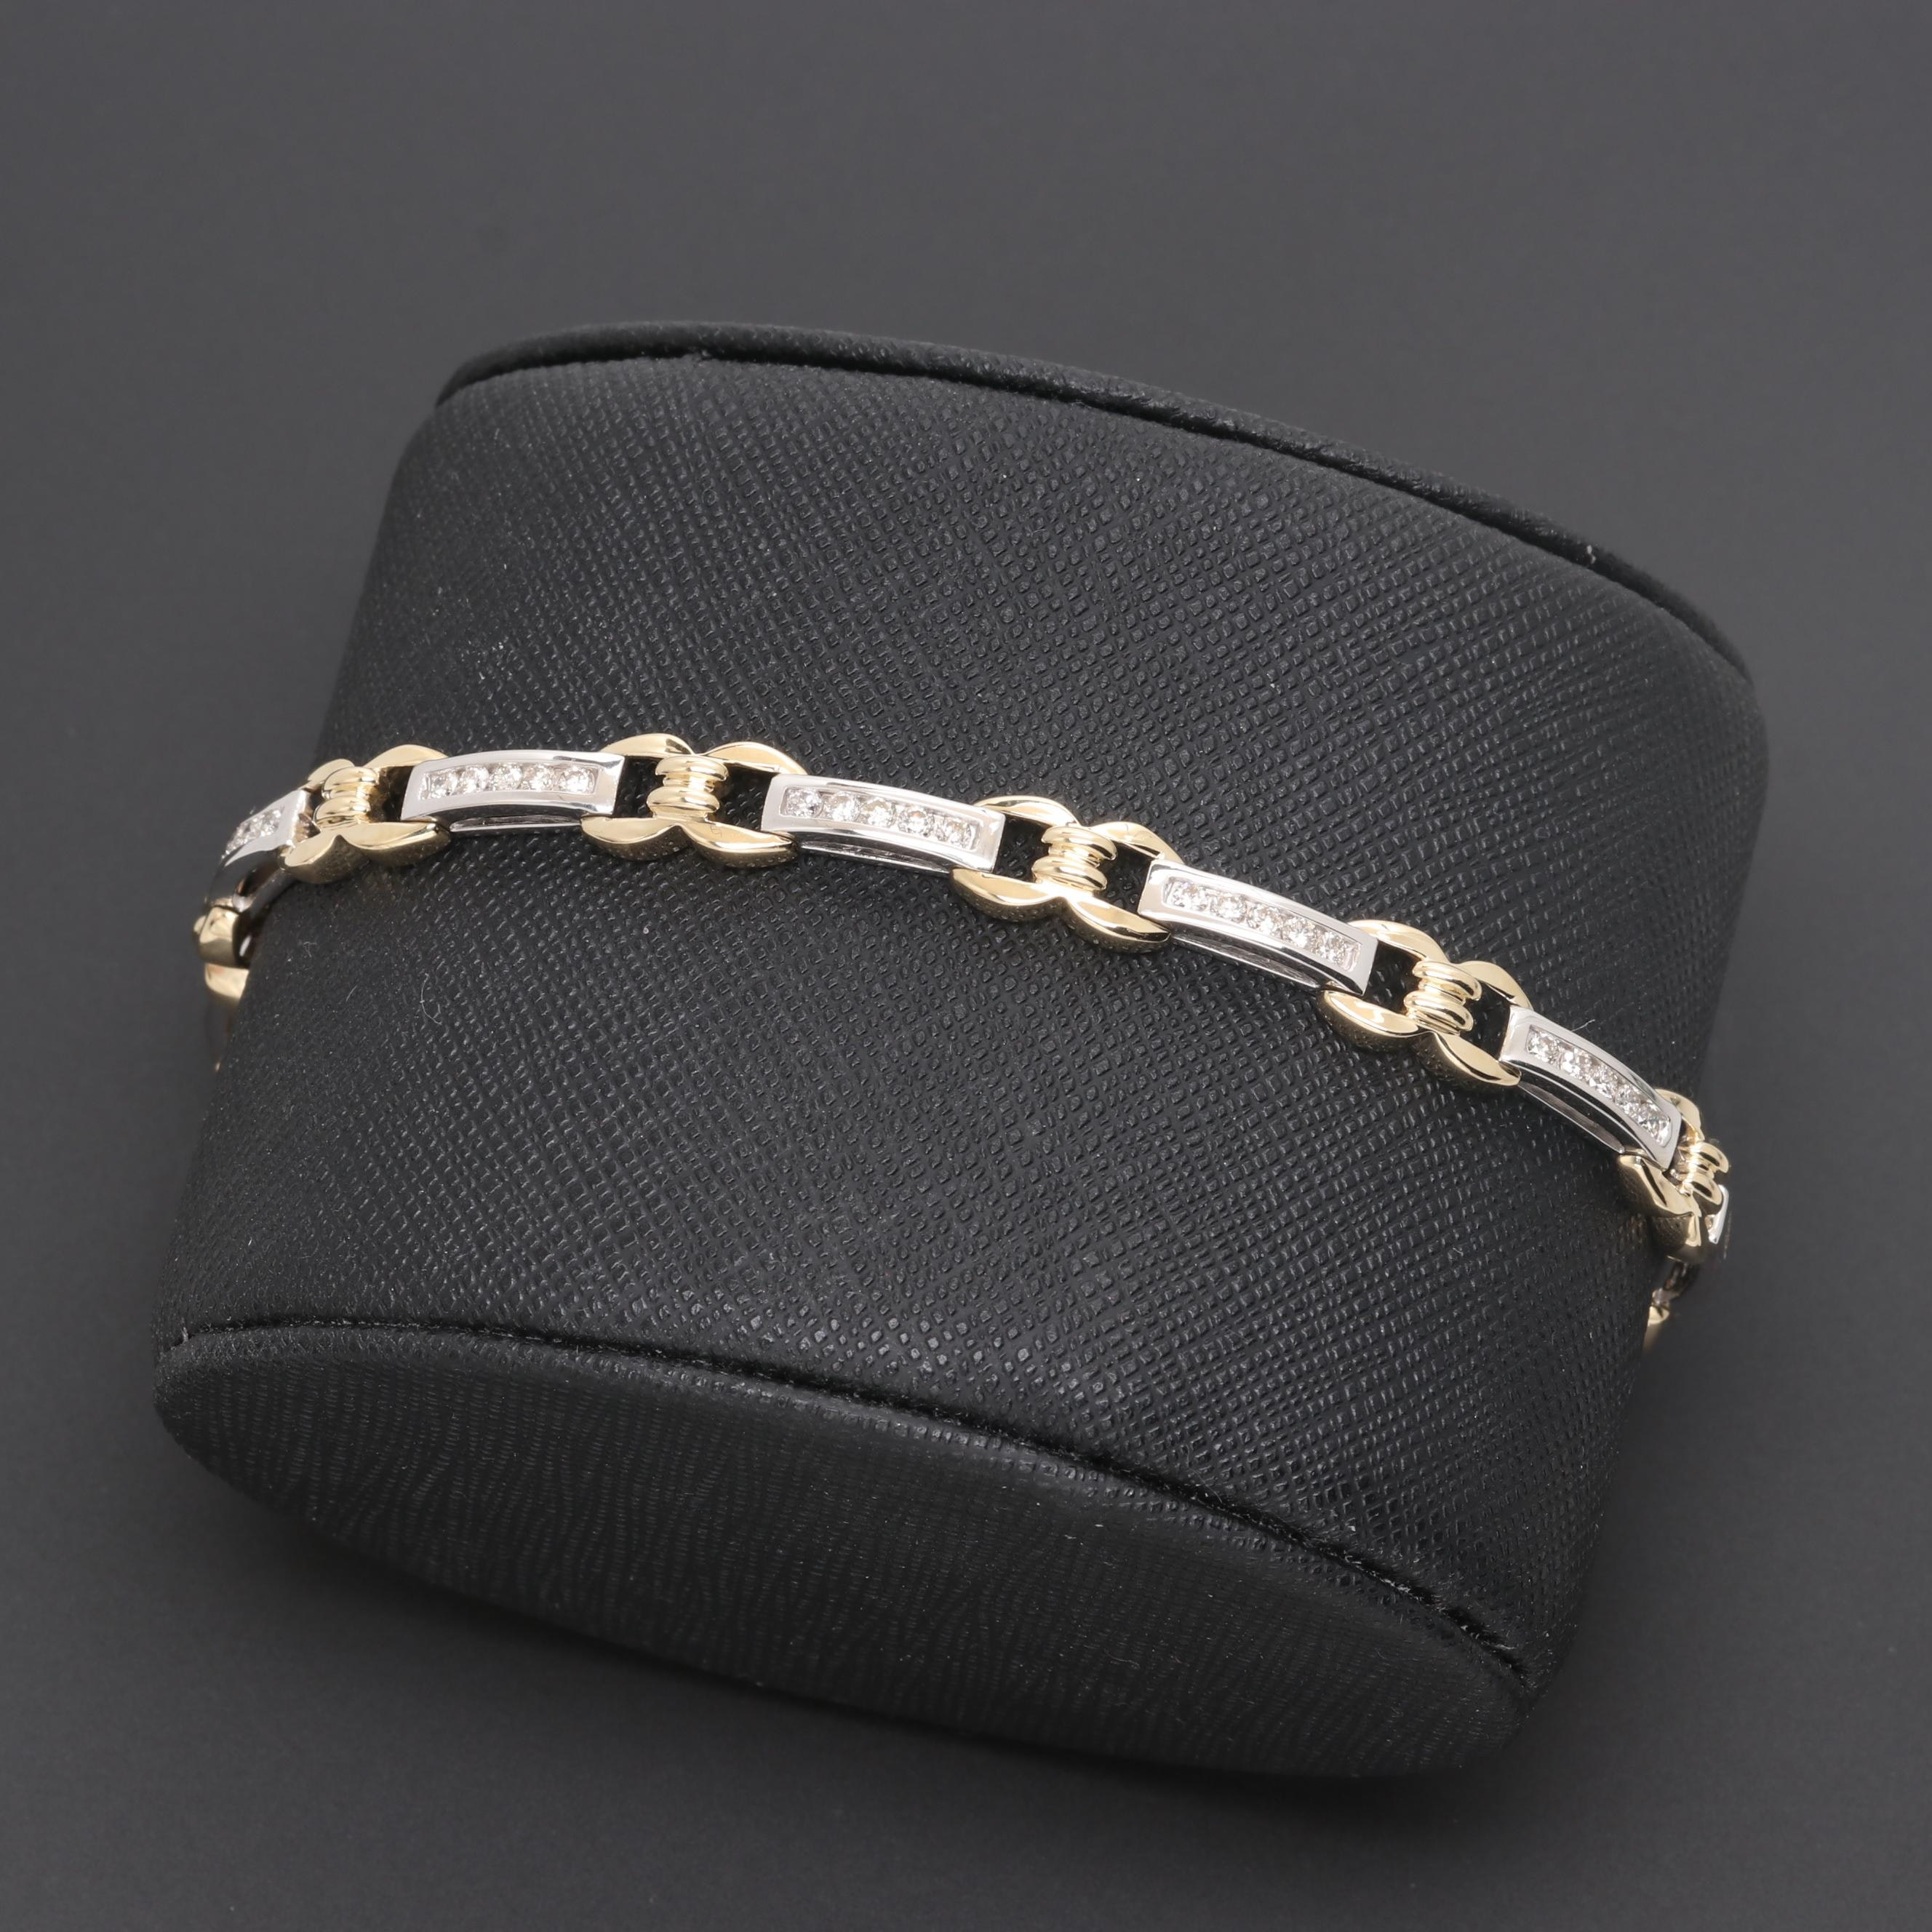 14K White and Yellow Gold 1.01 CTW Diamond Bracelet